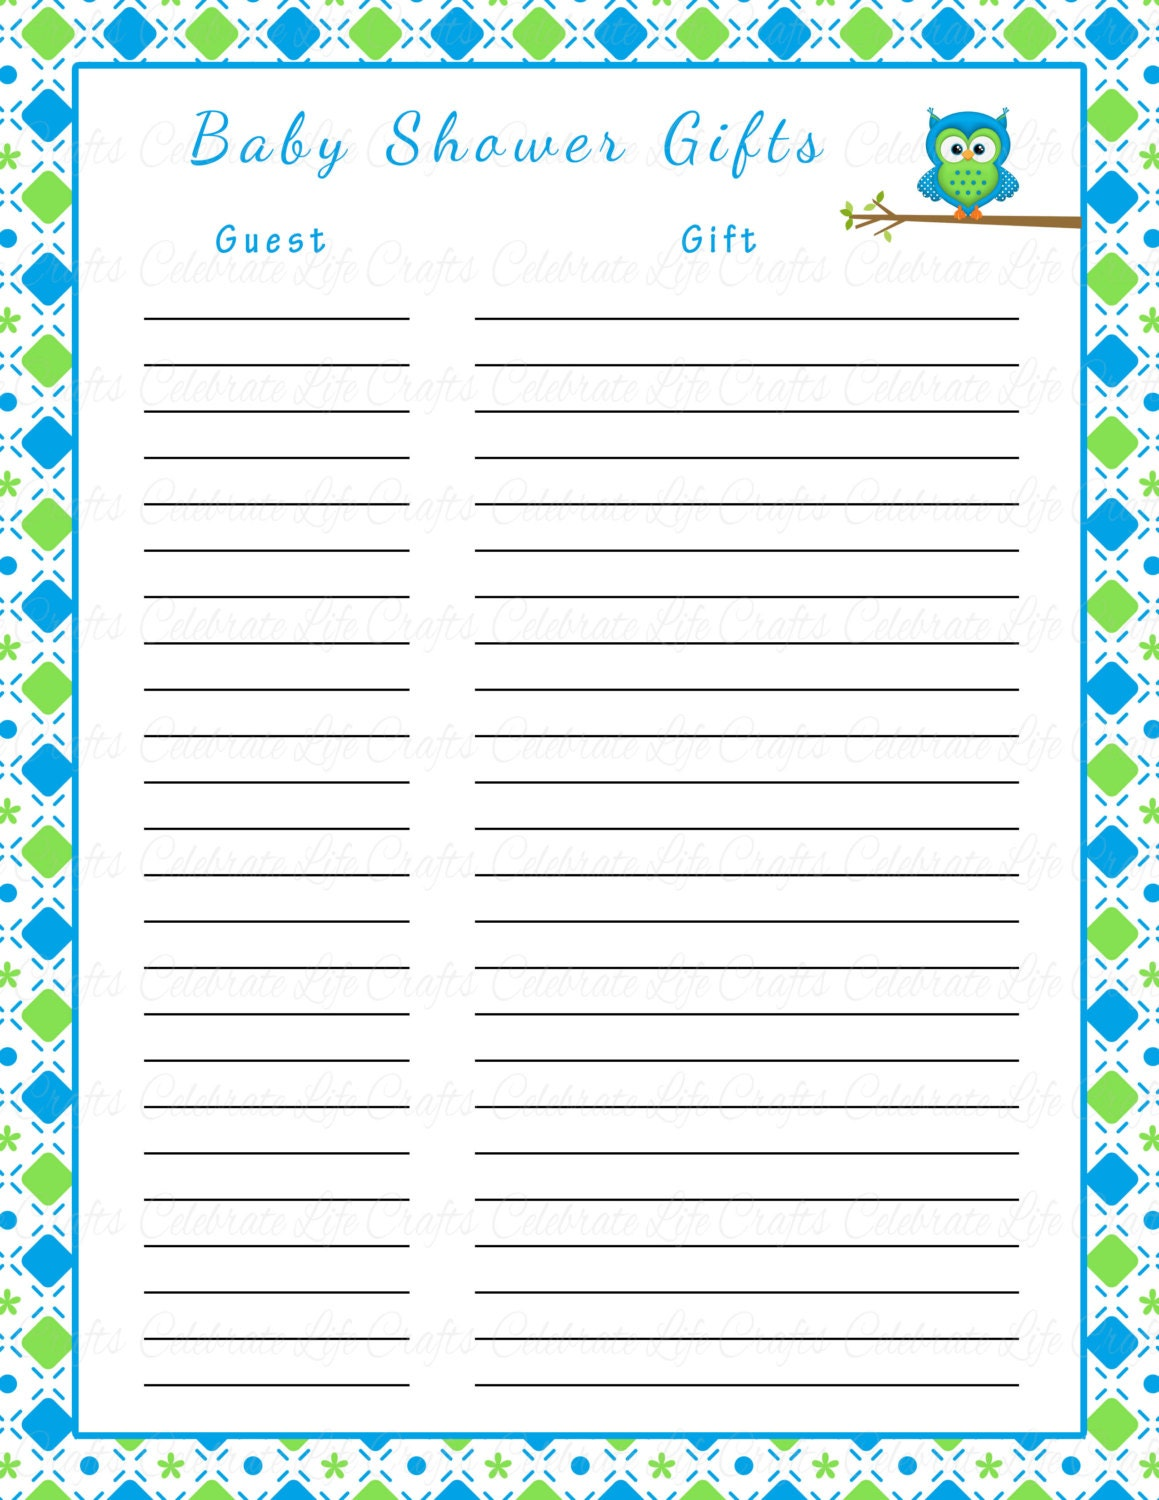 free printable baby shower guest list – Baby Shower Guest List Template